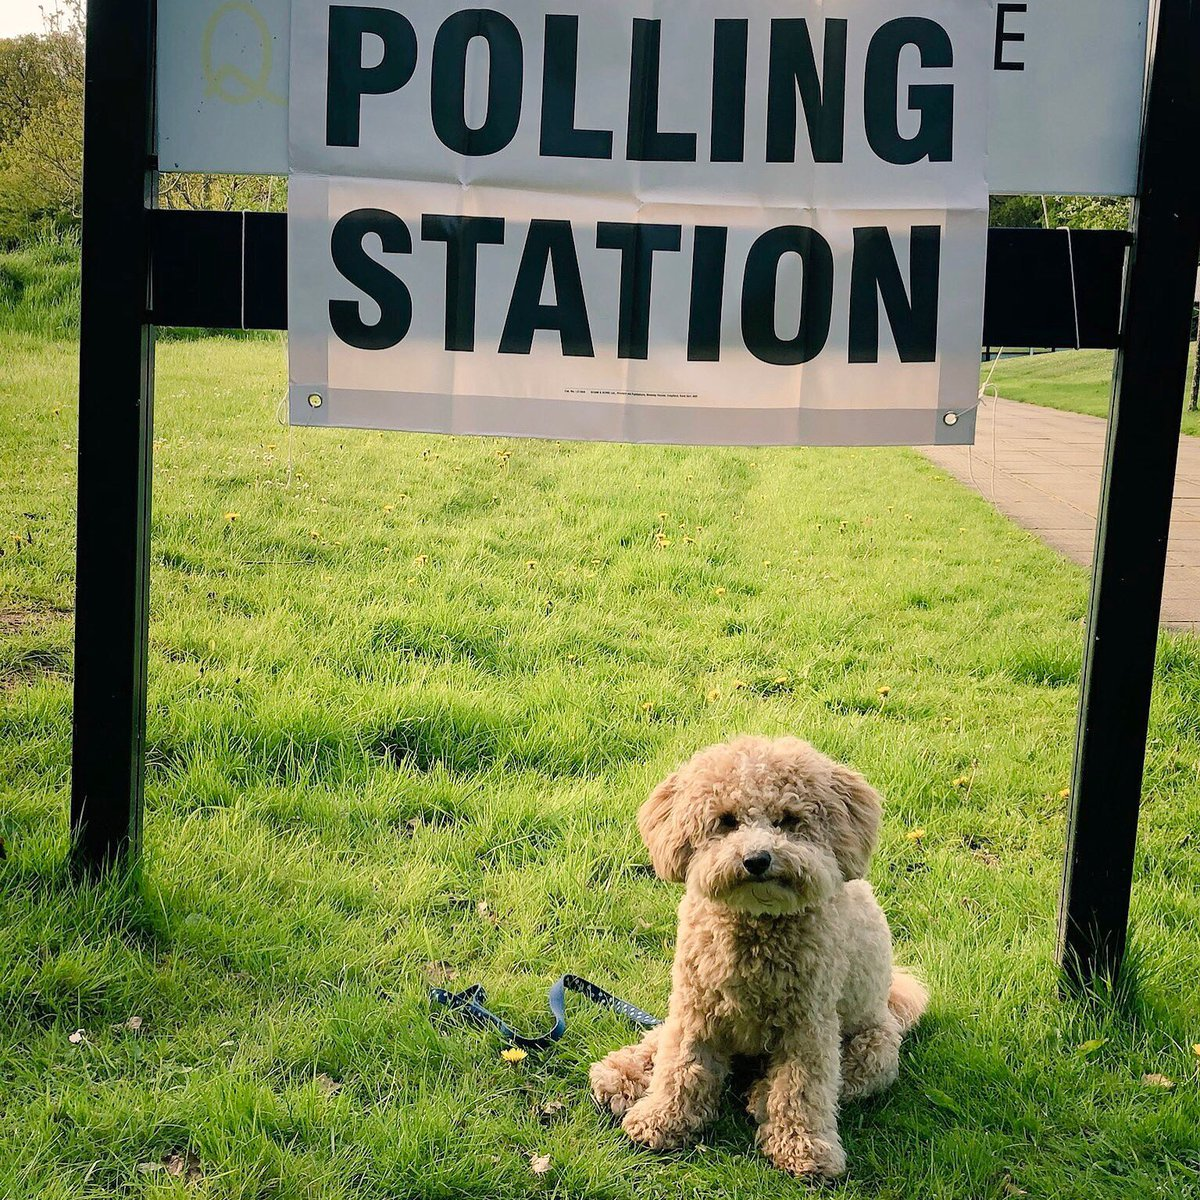 METRO GRAB TWITTER Dogs at Polling Stations, UK elections https://twitter.com/poodlemixworld/status/1123844783099842560